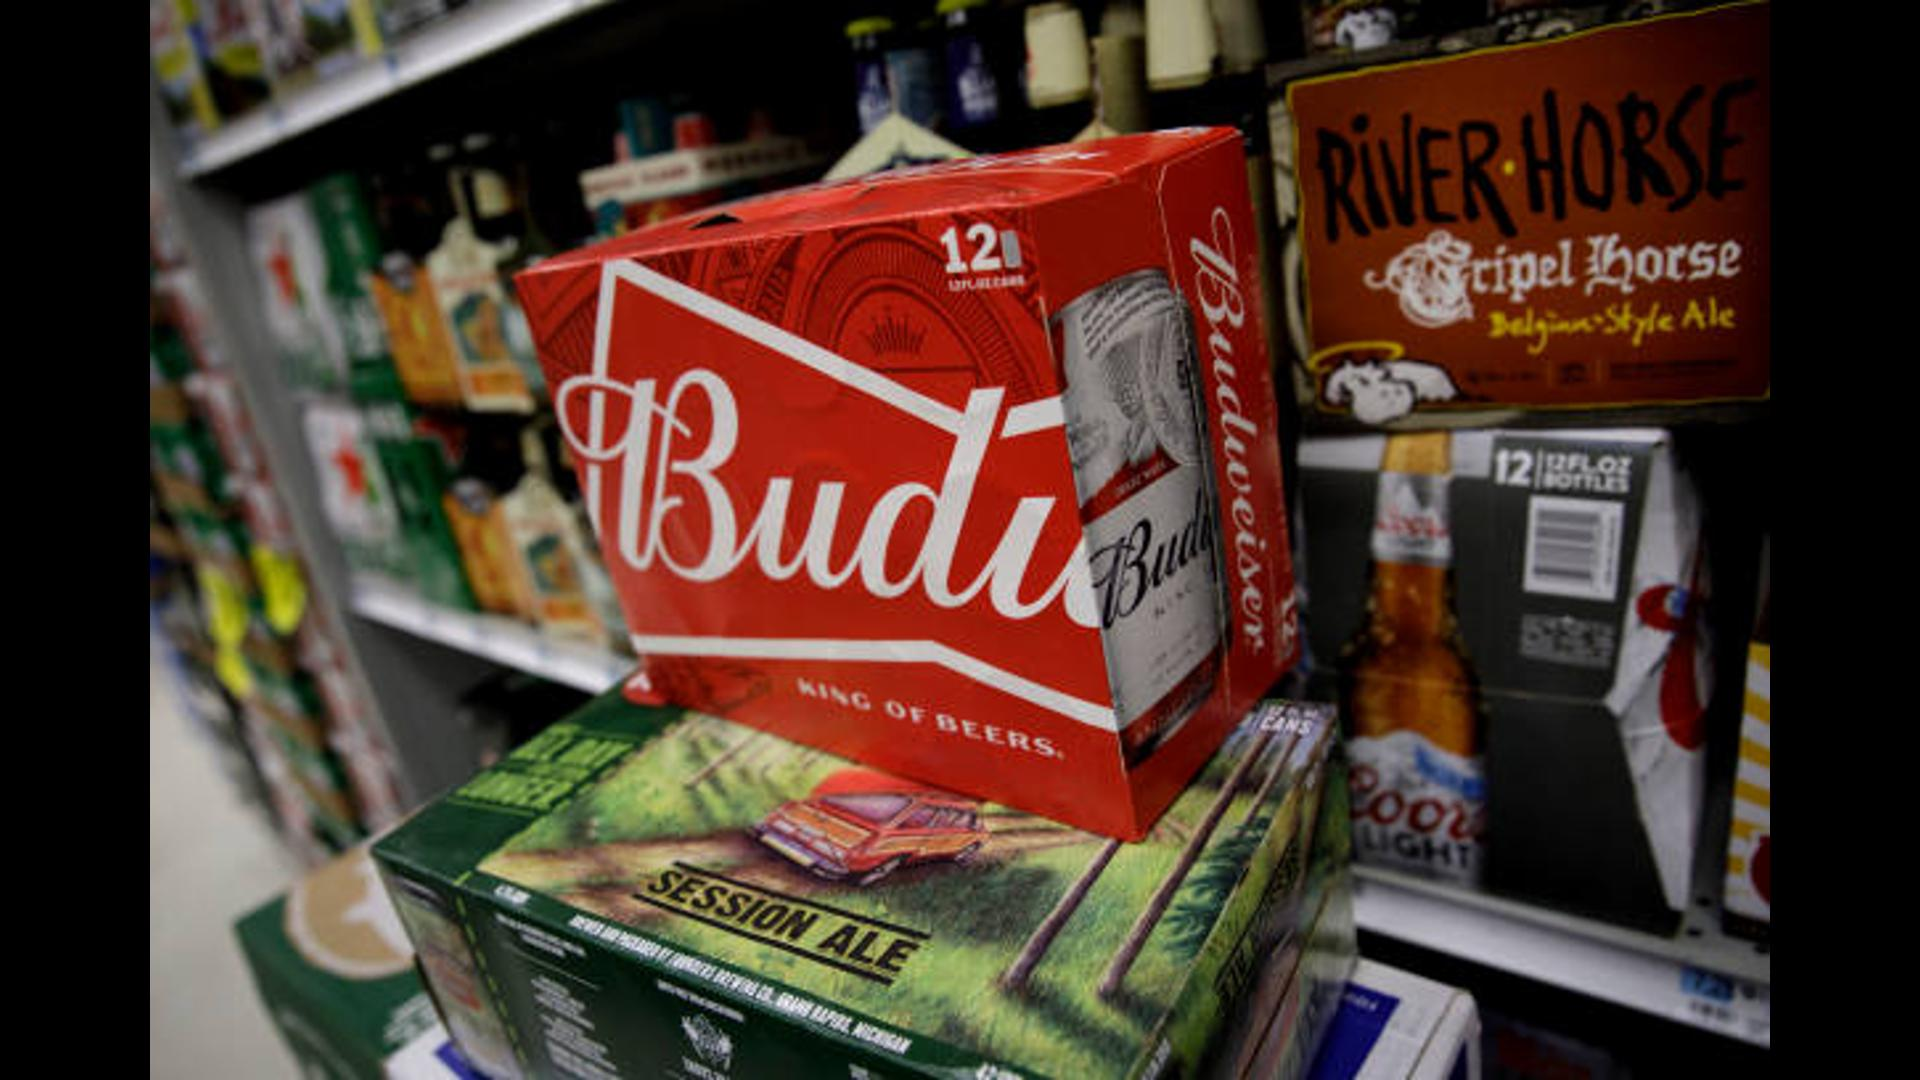 National News - Climate Change Could Raise Price Of Beer